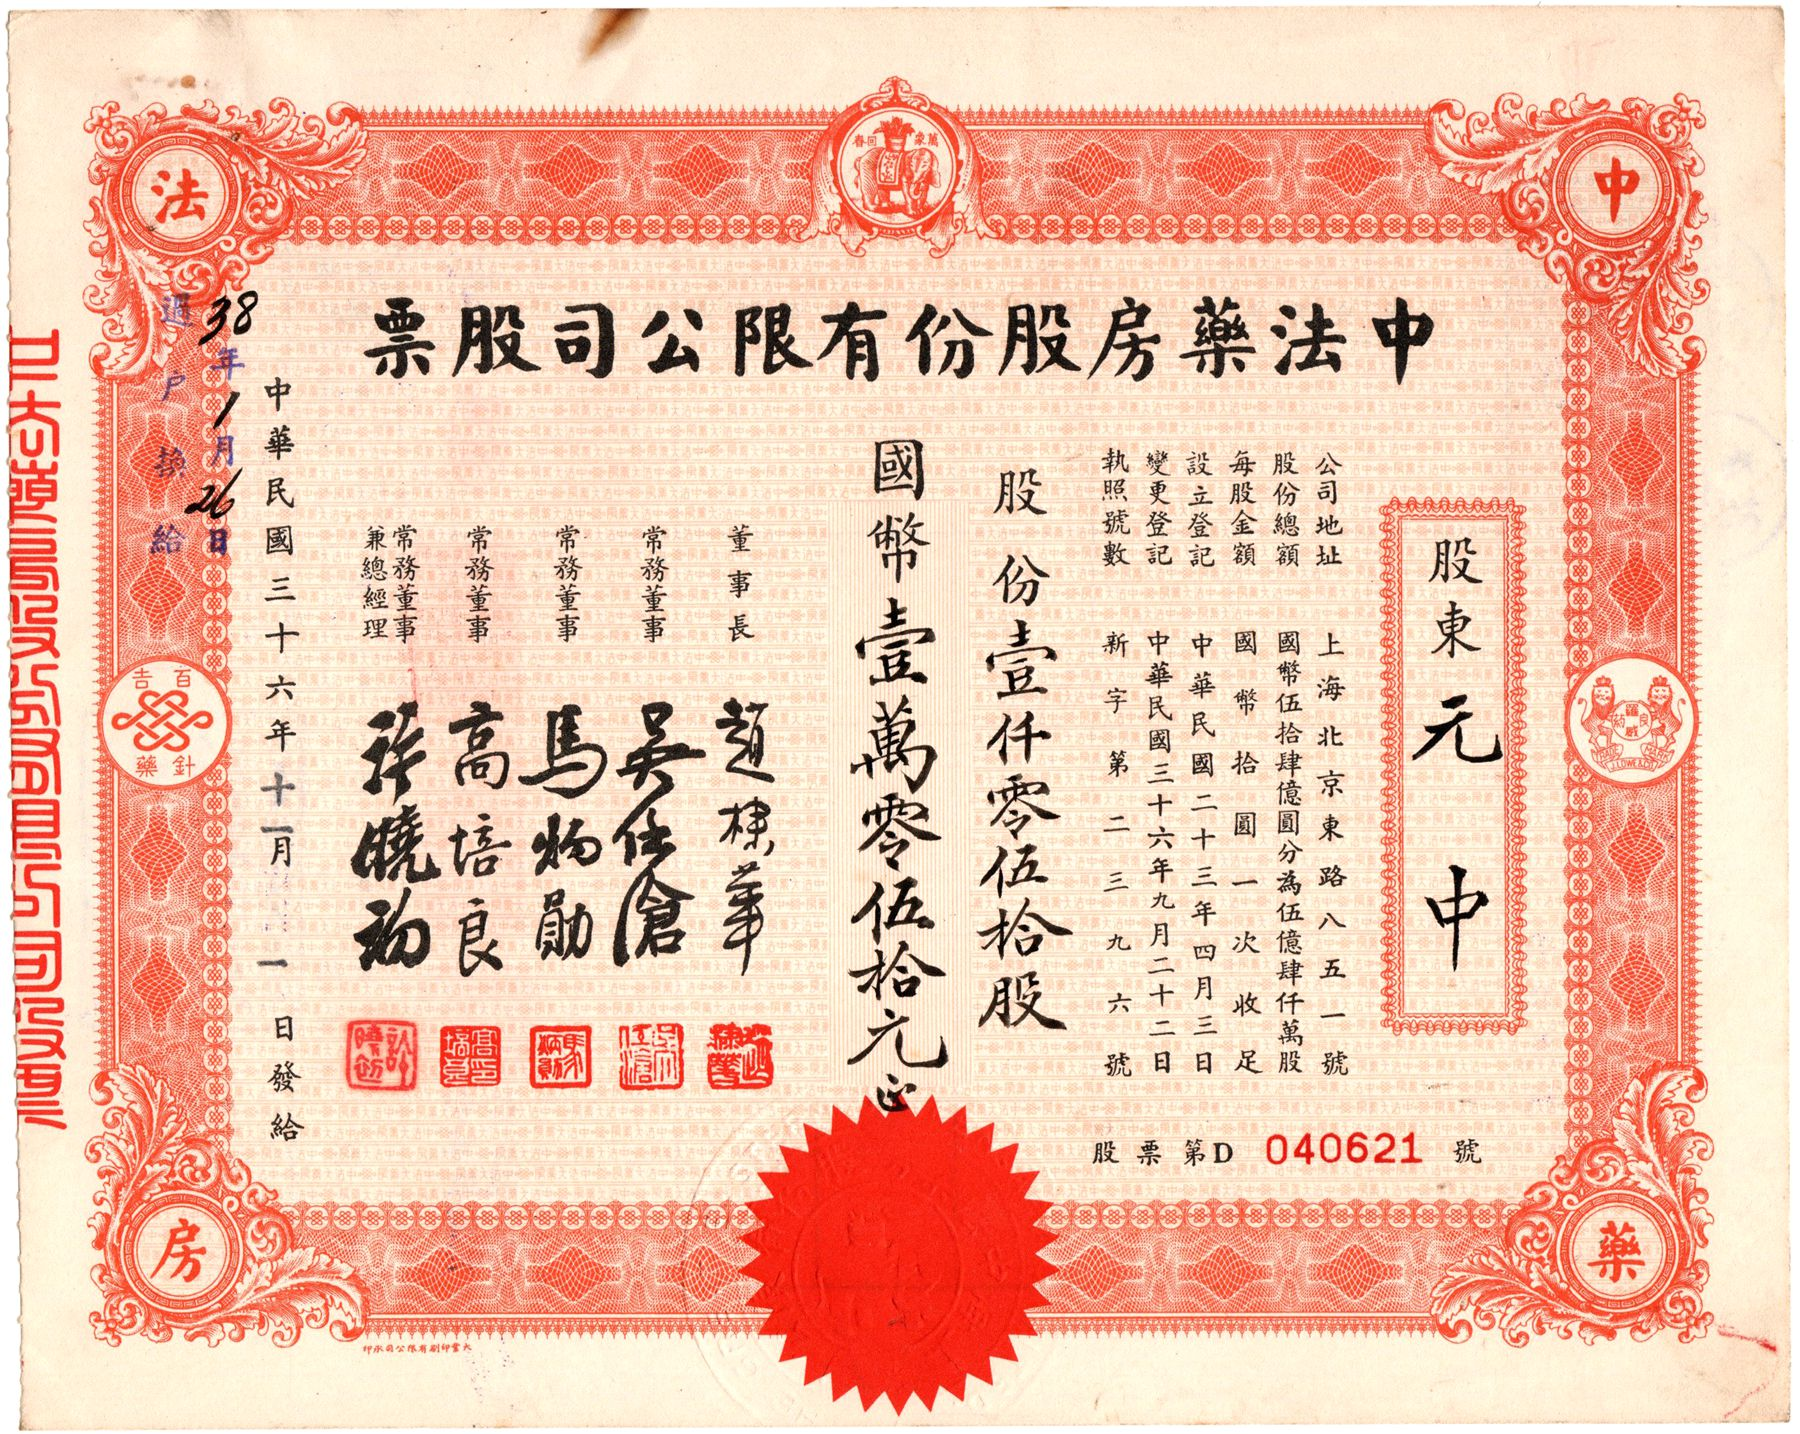 S1028, Sino-French Pharmacy Co, Stock Certificate of 50,000 Shares, 1947